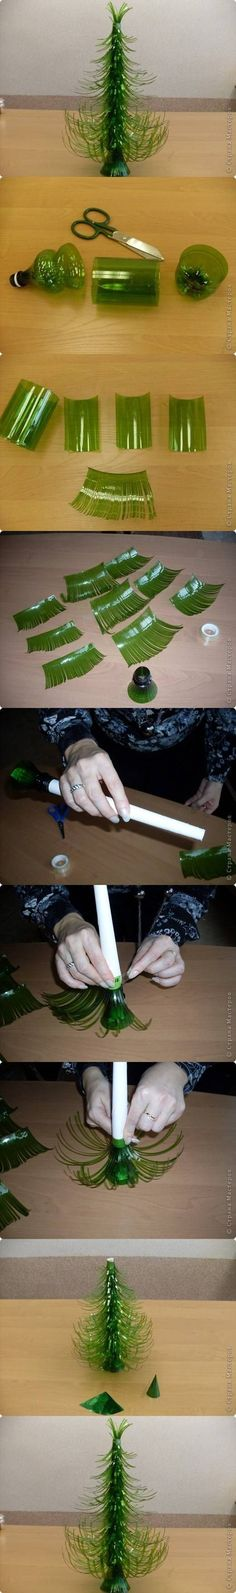 Plastic Bottle Craft Ideas for Kids19